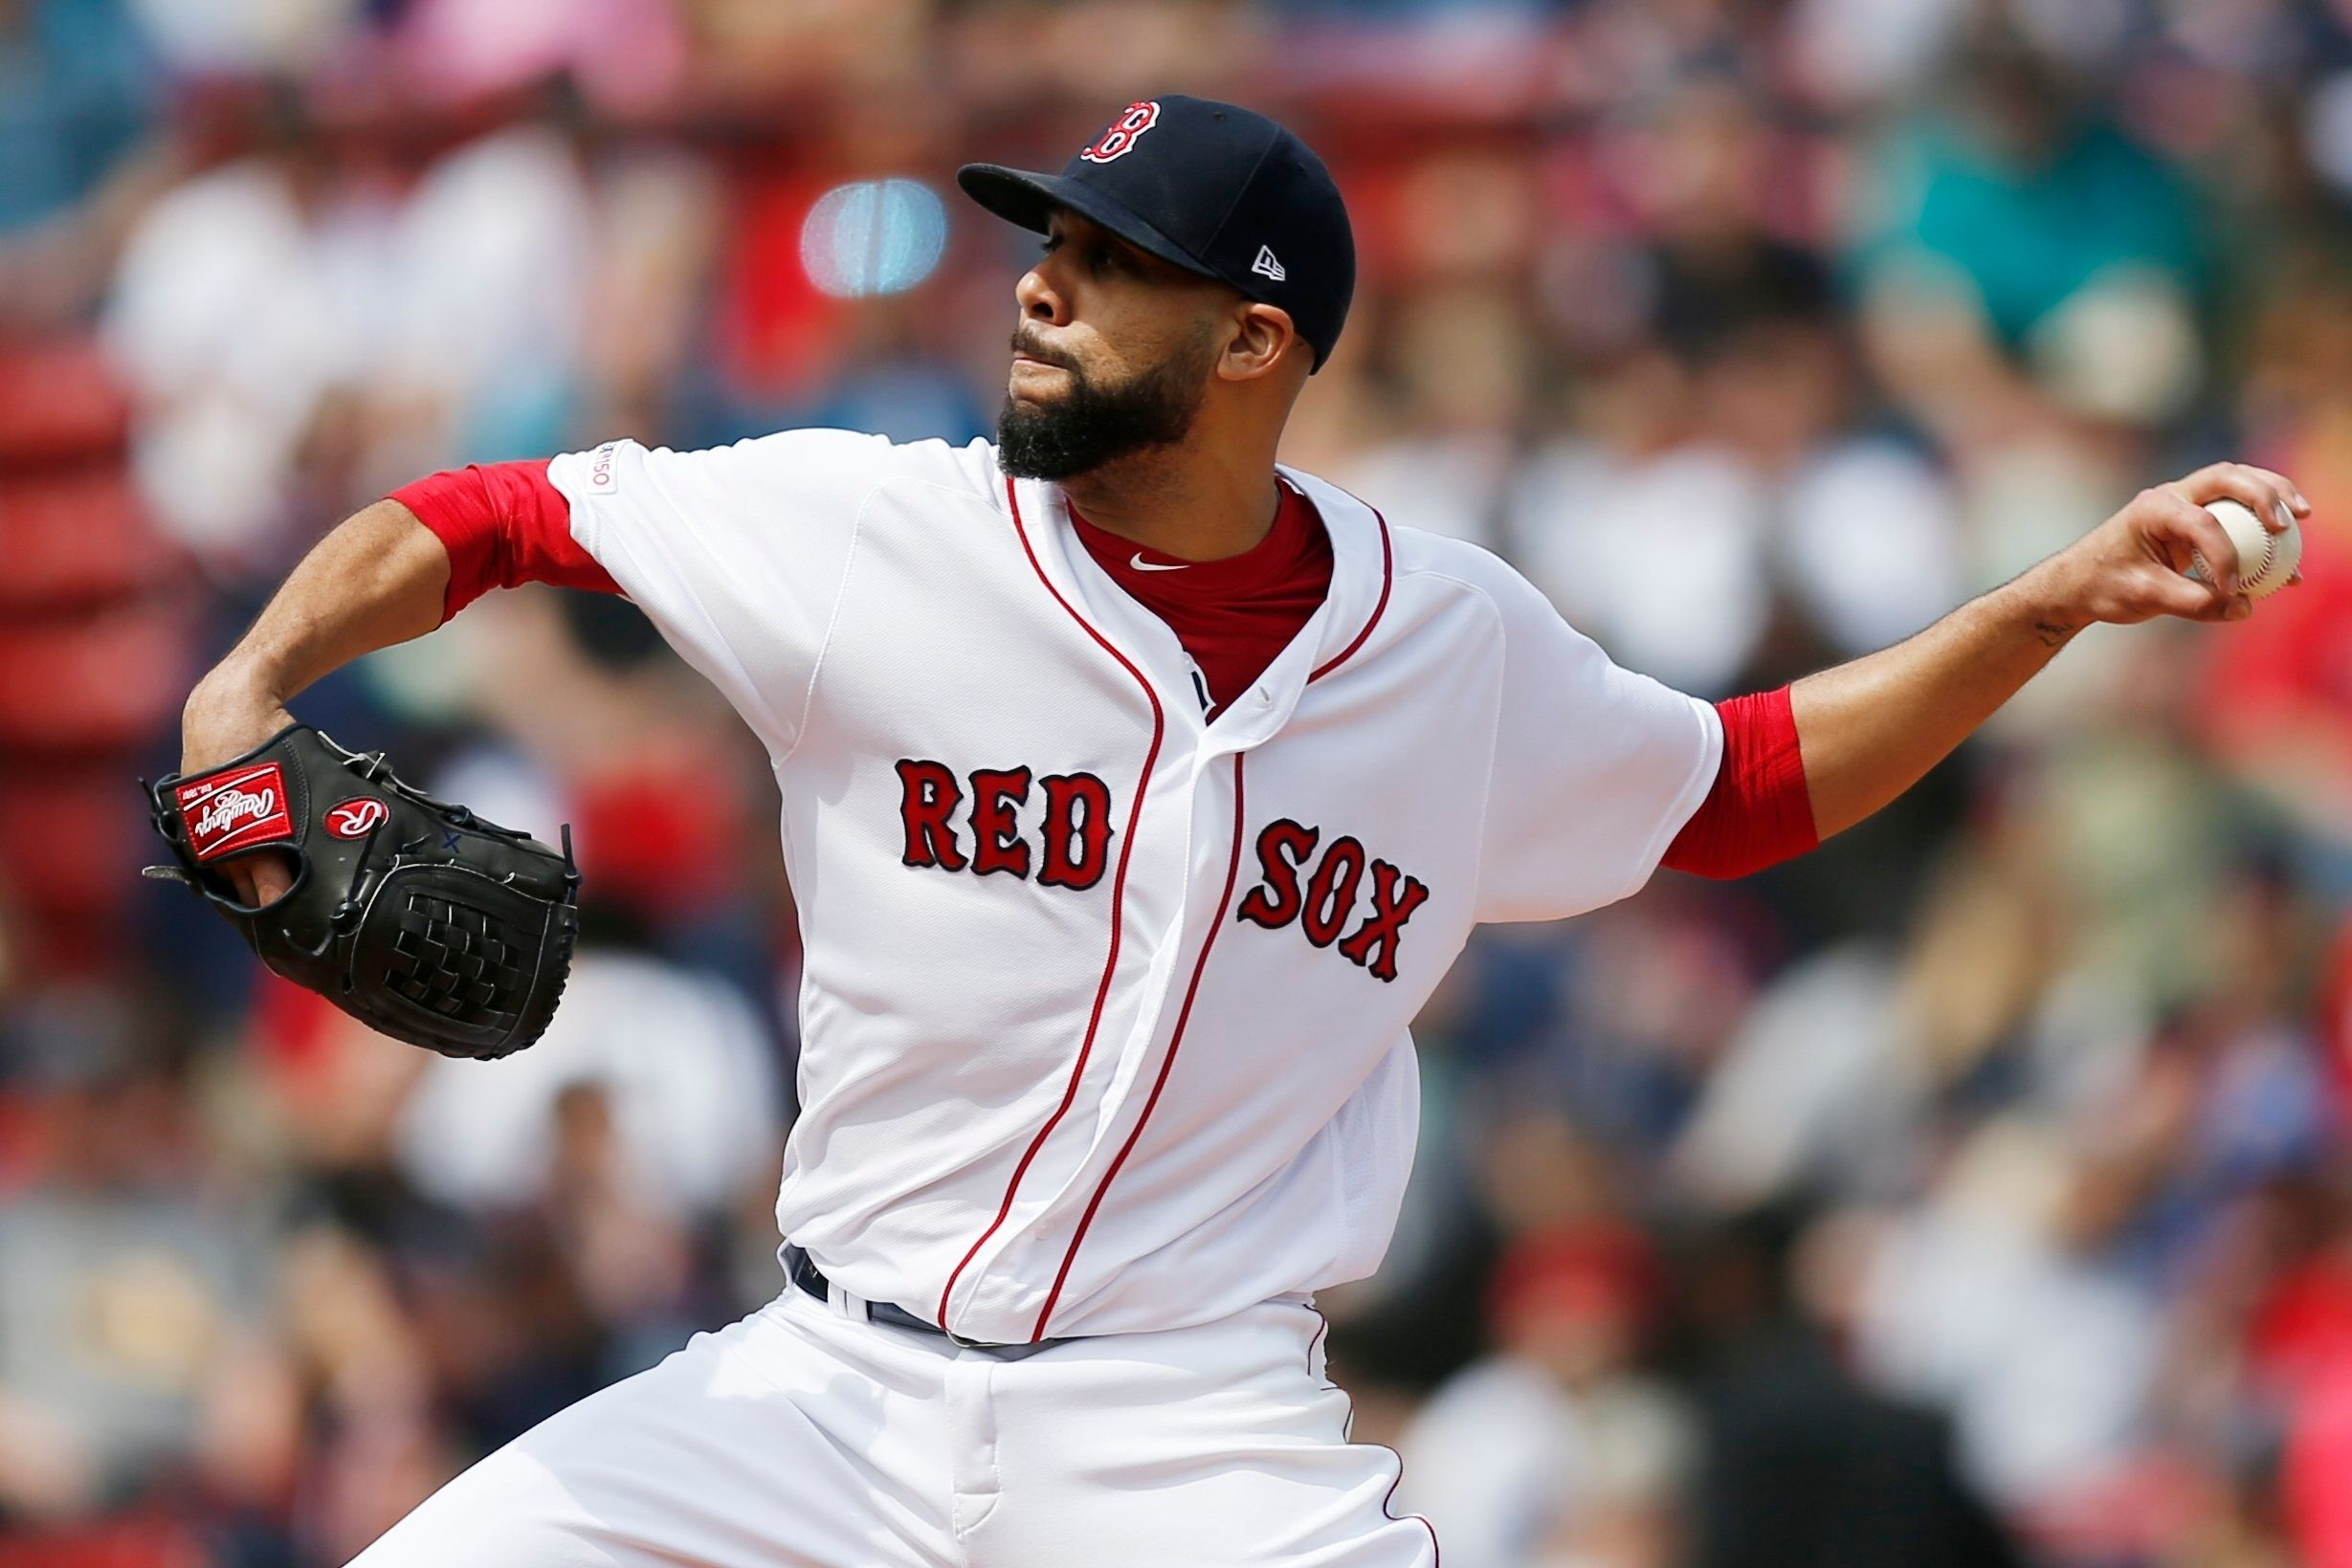 Boston Red Sox's David Price pitches during the first inning of a baseball game against the Baltimore Orioles in Boston, Sunday, April 14, 2019. (AP Photo/Michael Dwyer)